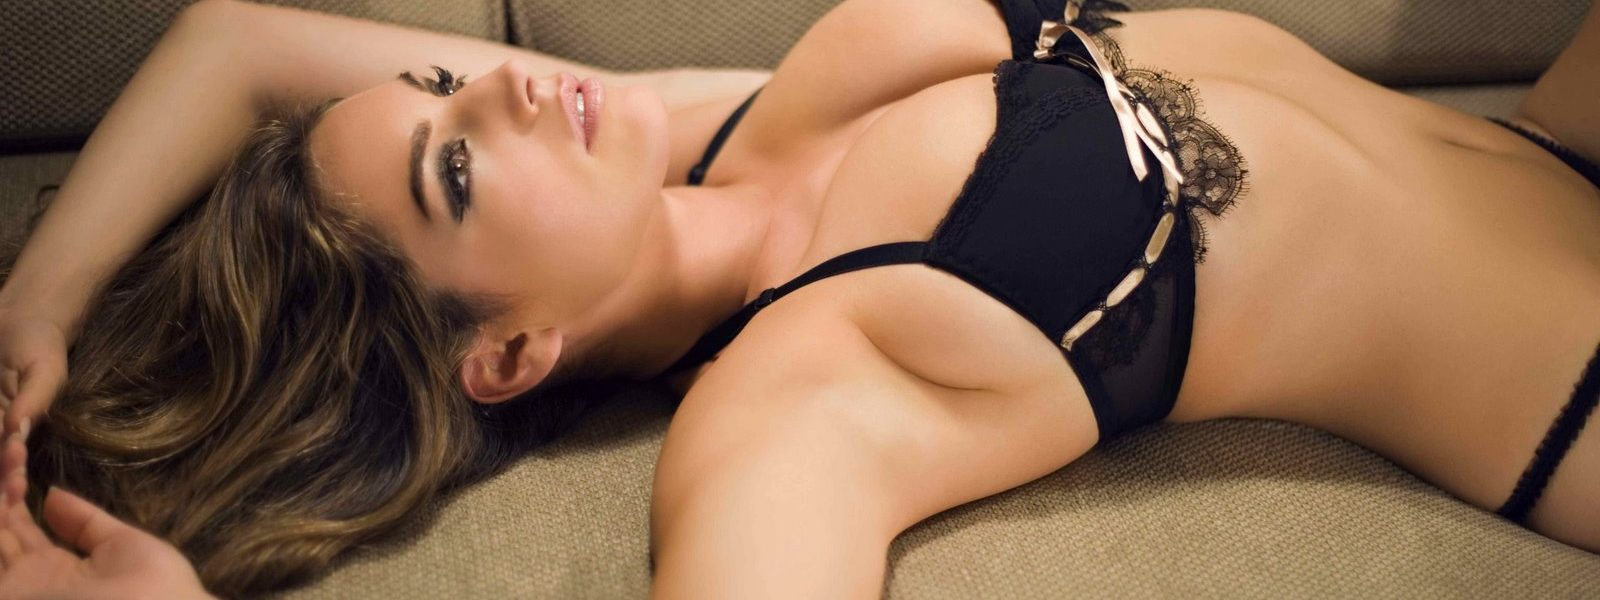 Online Vehicle Insurance Coverage - Sexy Girls Obtain a Better Insurance Policy Bargain